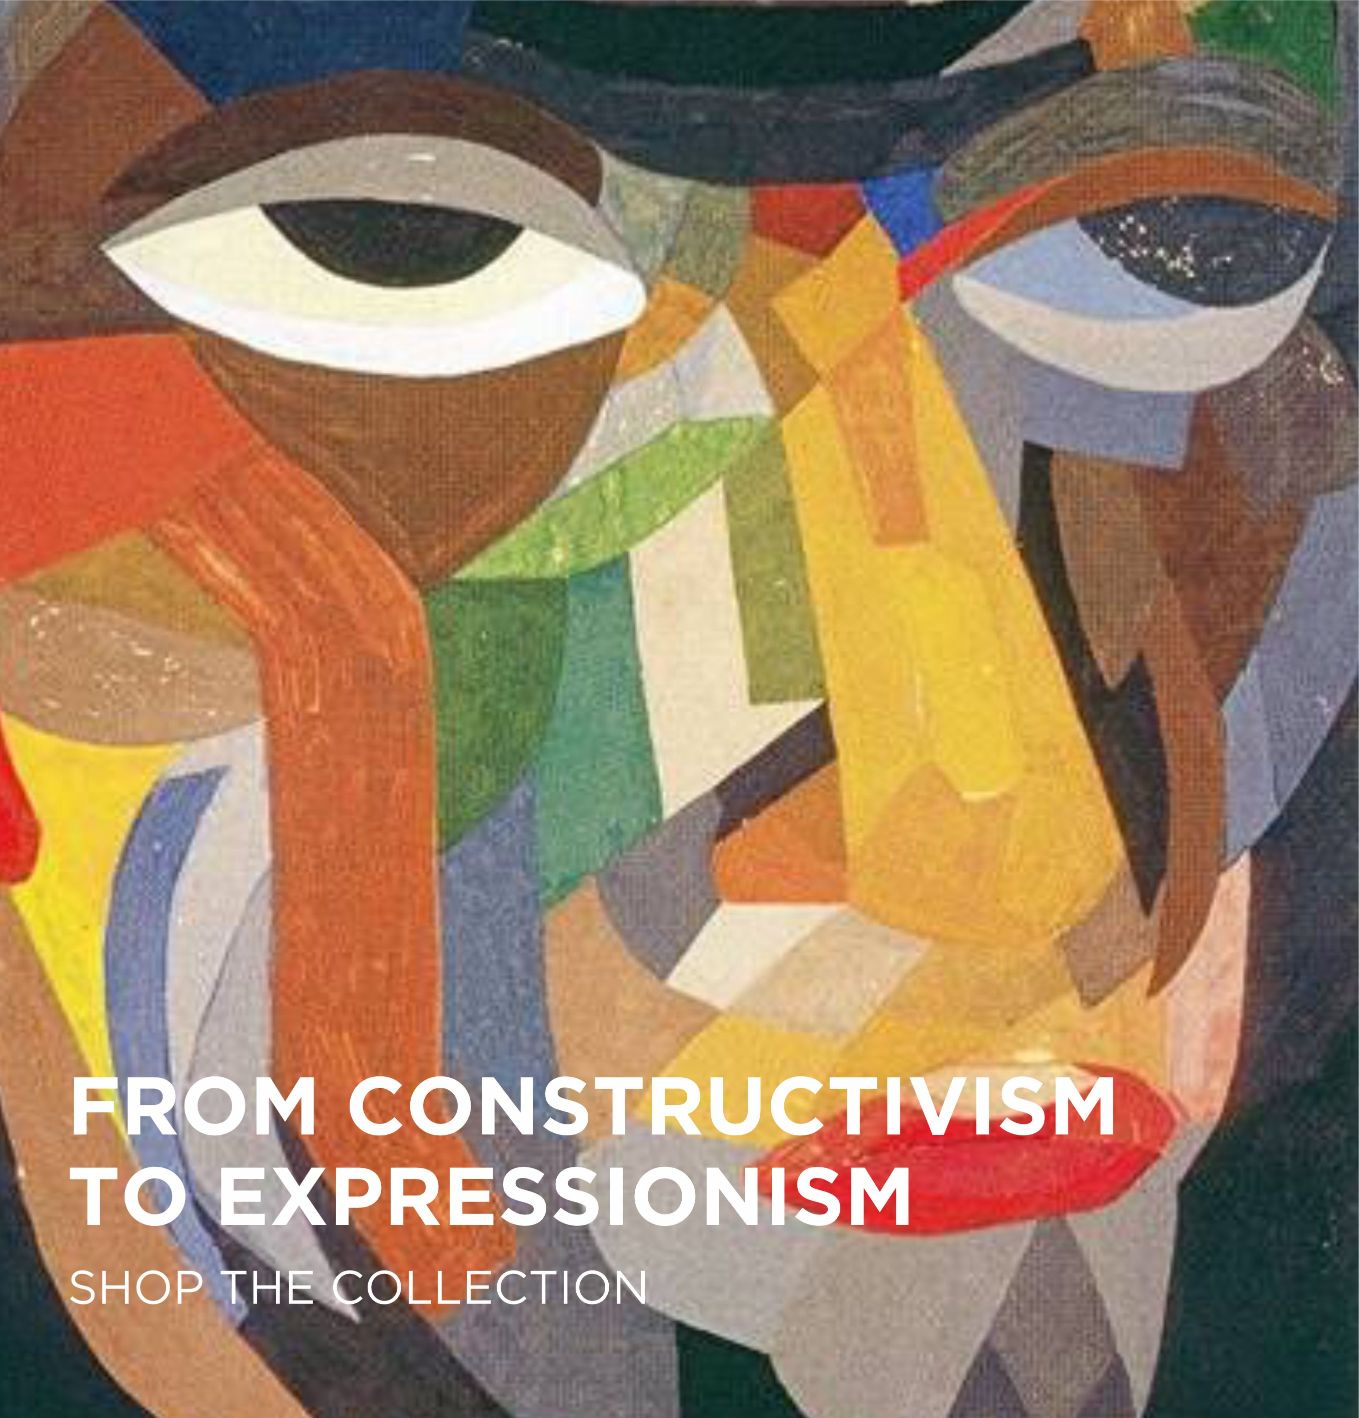 FROM CONSTRUCTIVISM TO EXPRESSIONISM